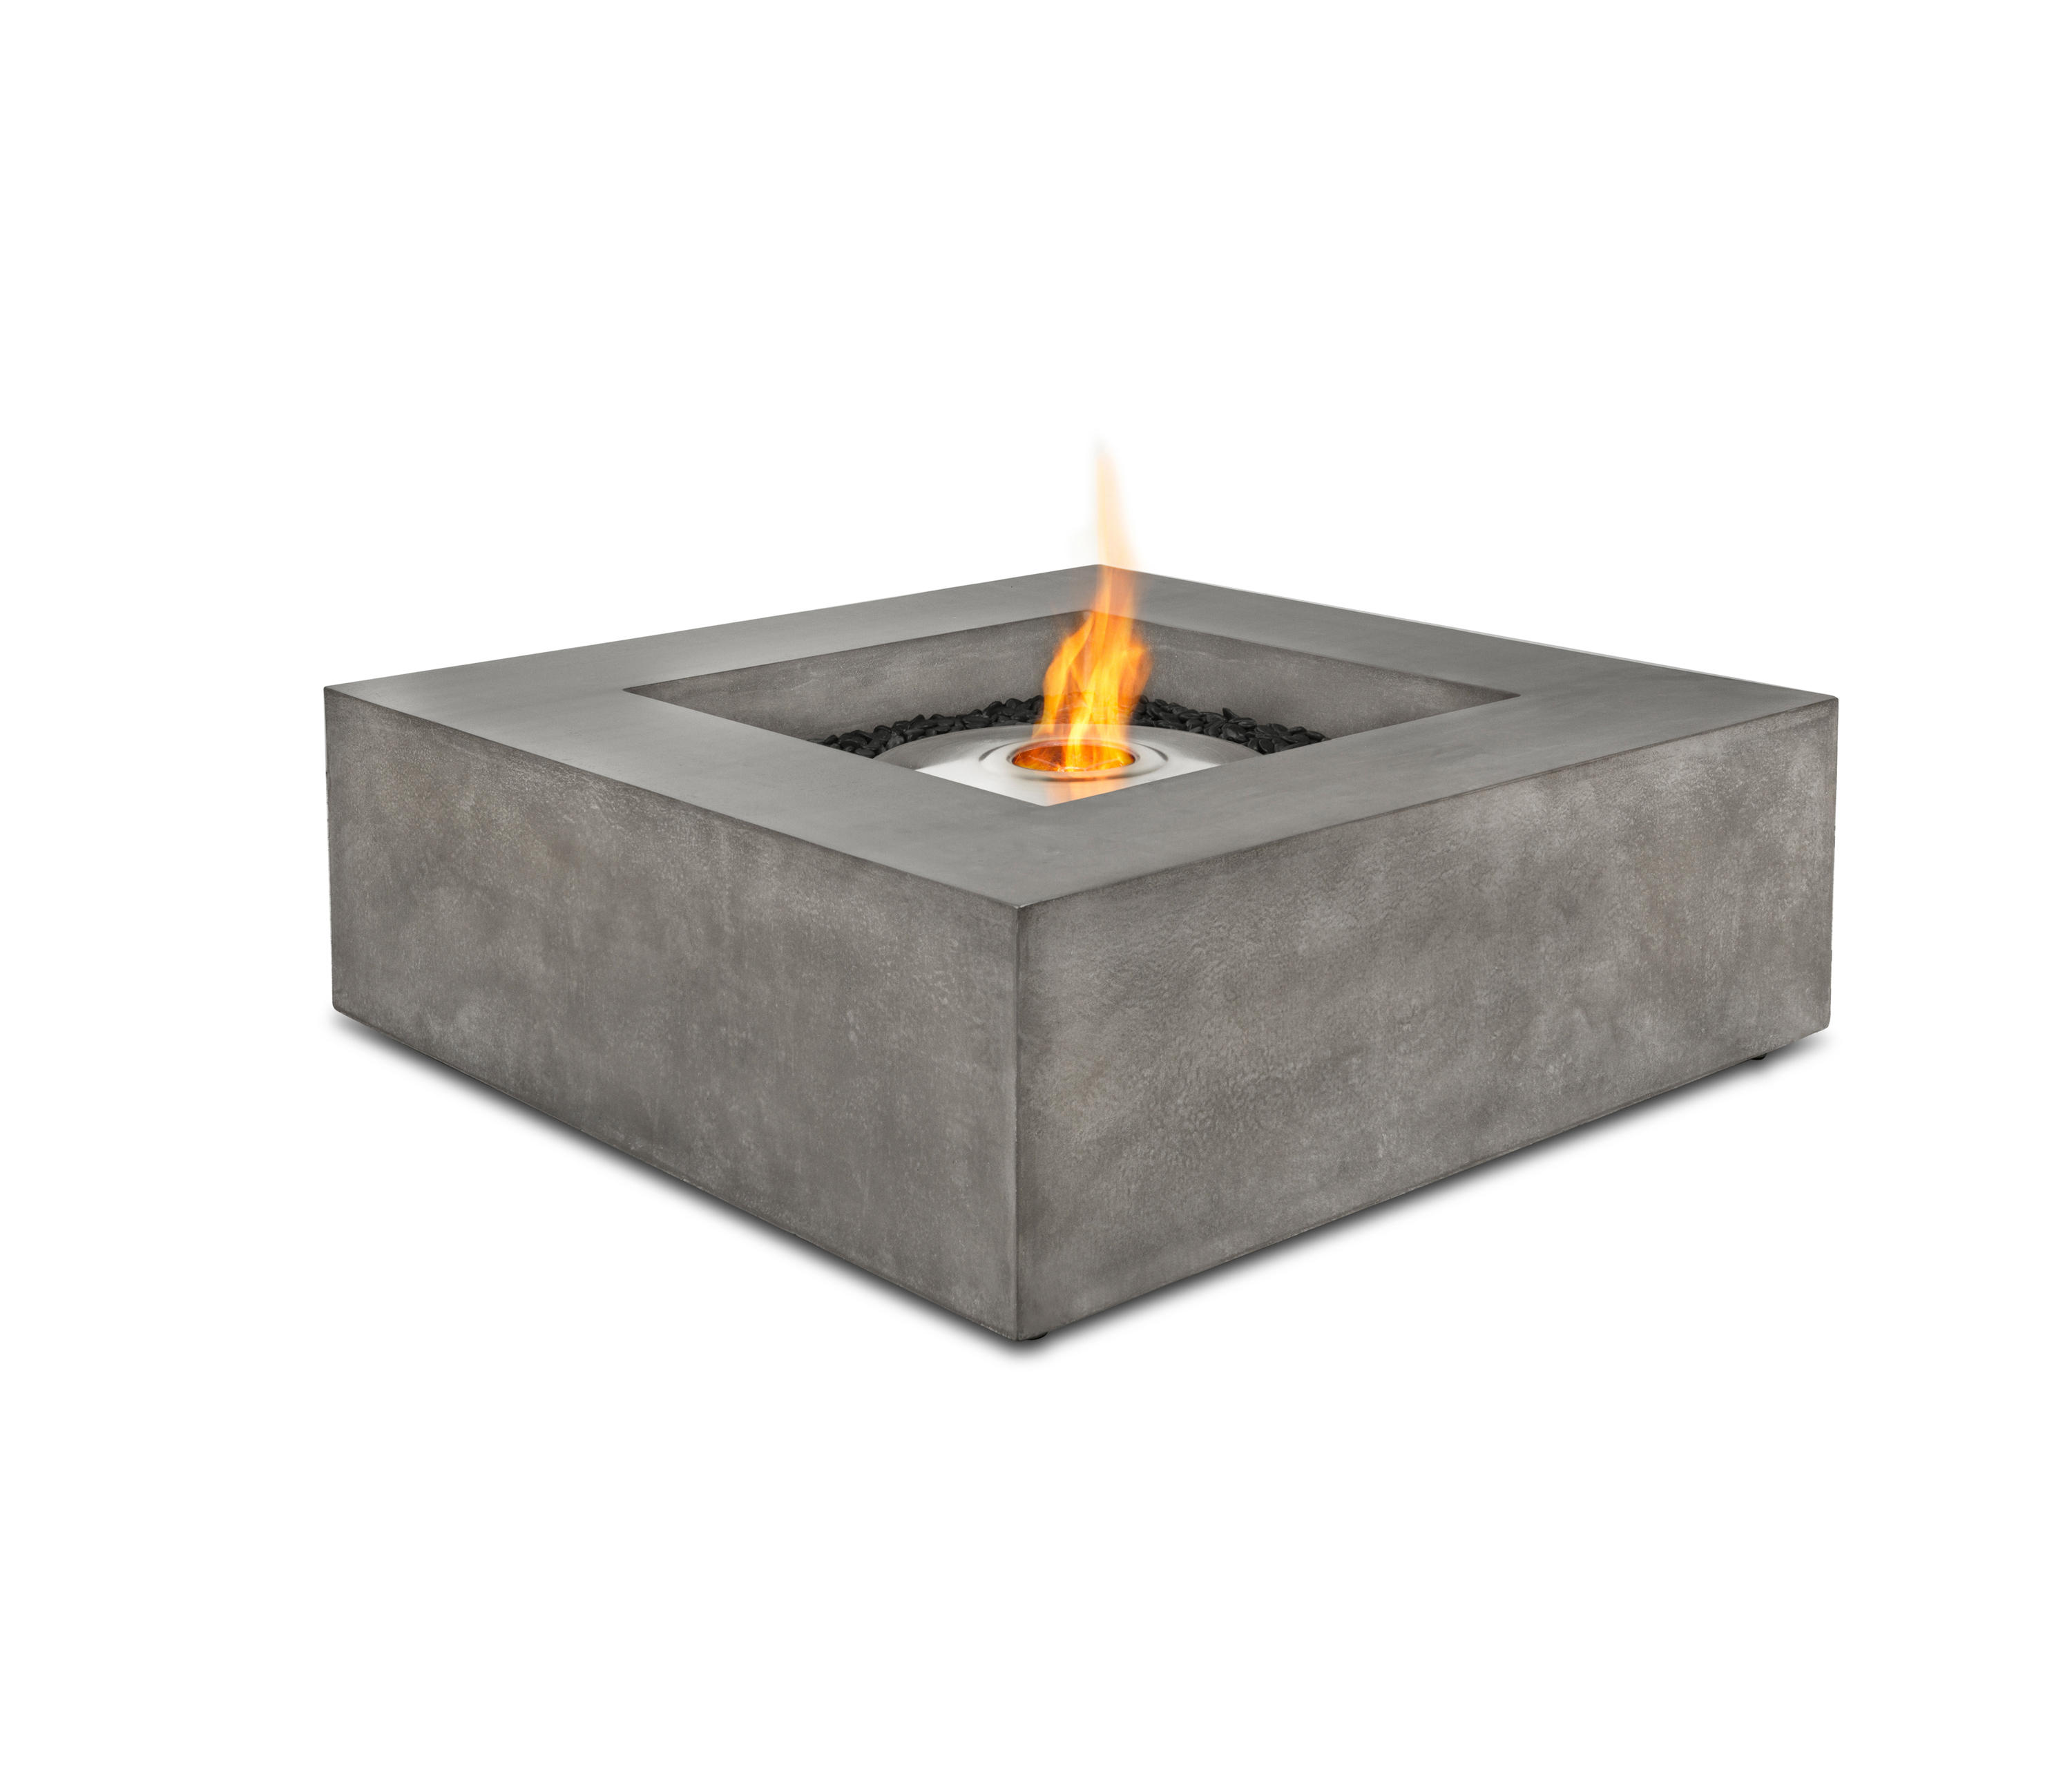 base garden fire pits from ecosmart fire architonic. Black Bedroom Furniture Sets. Home Design Ideas